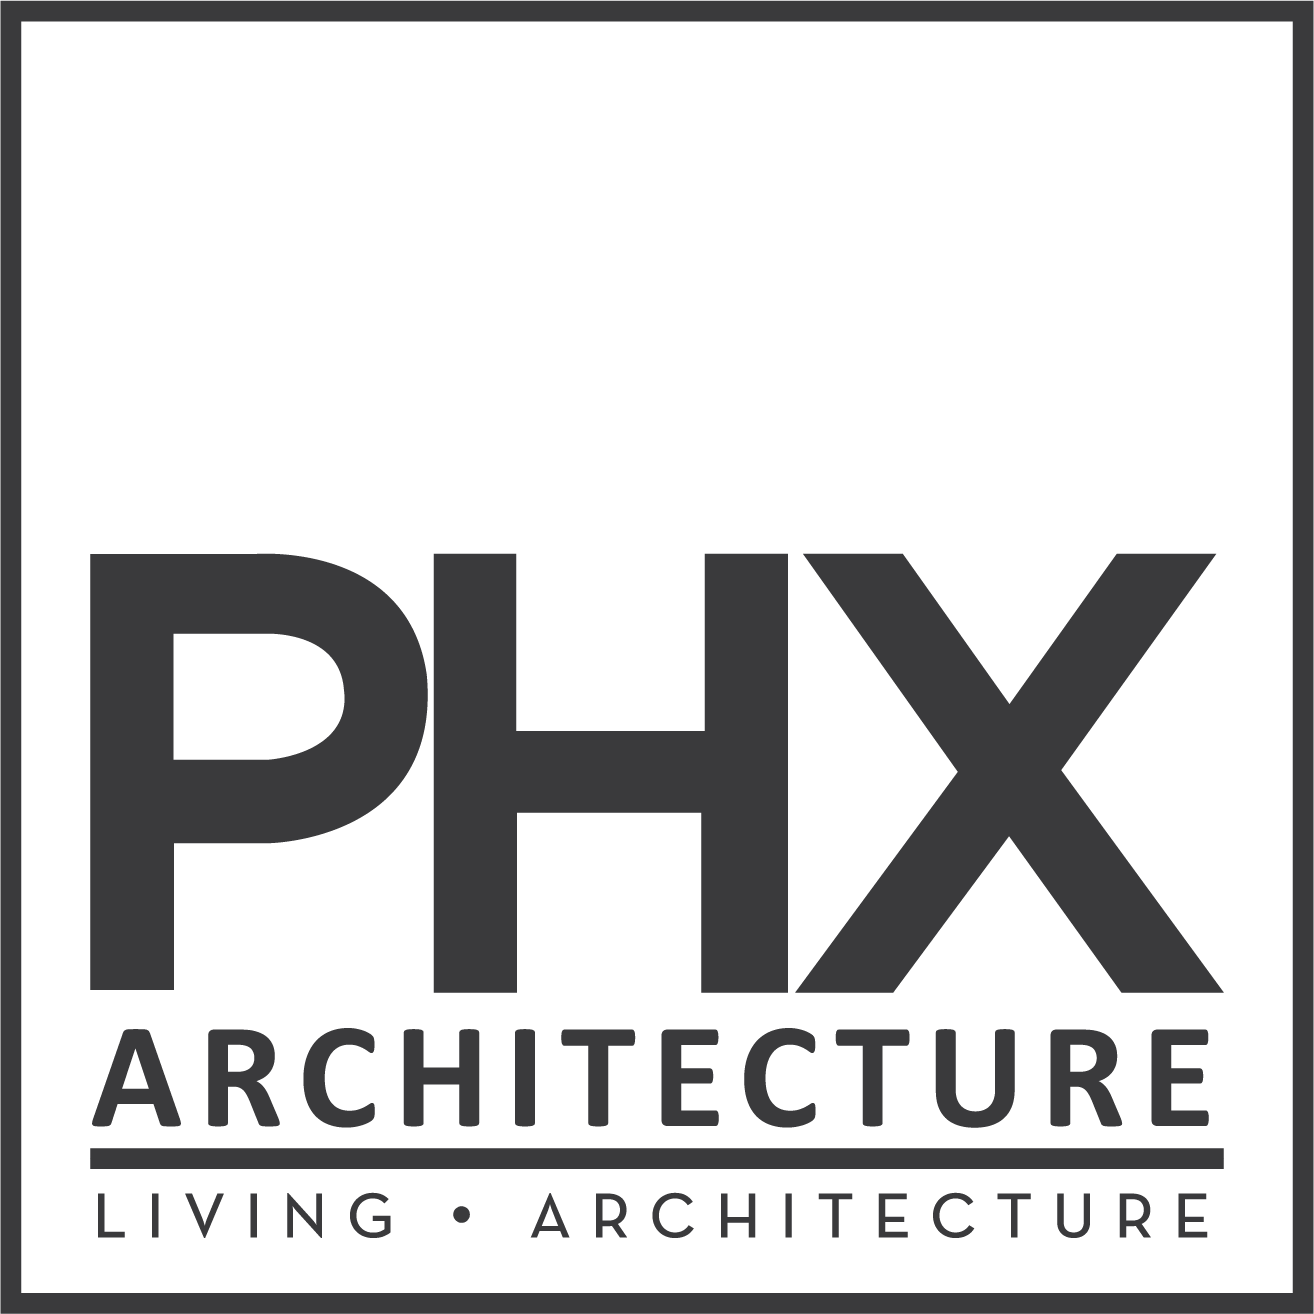 Team PHX Architecture